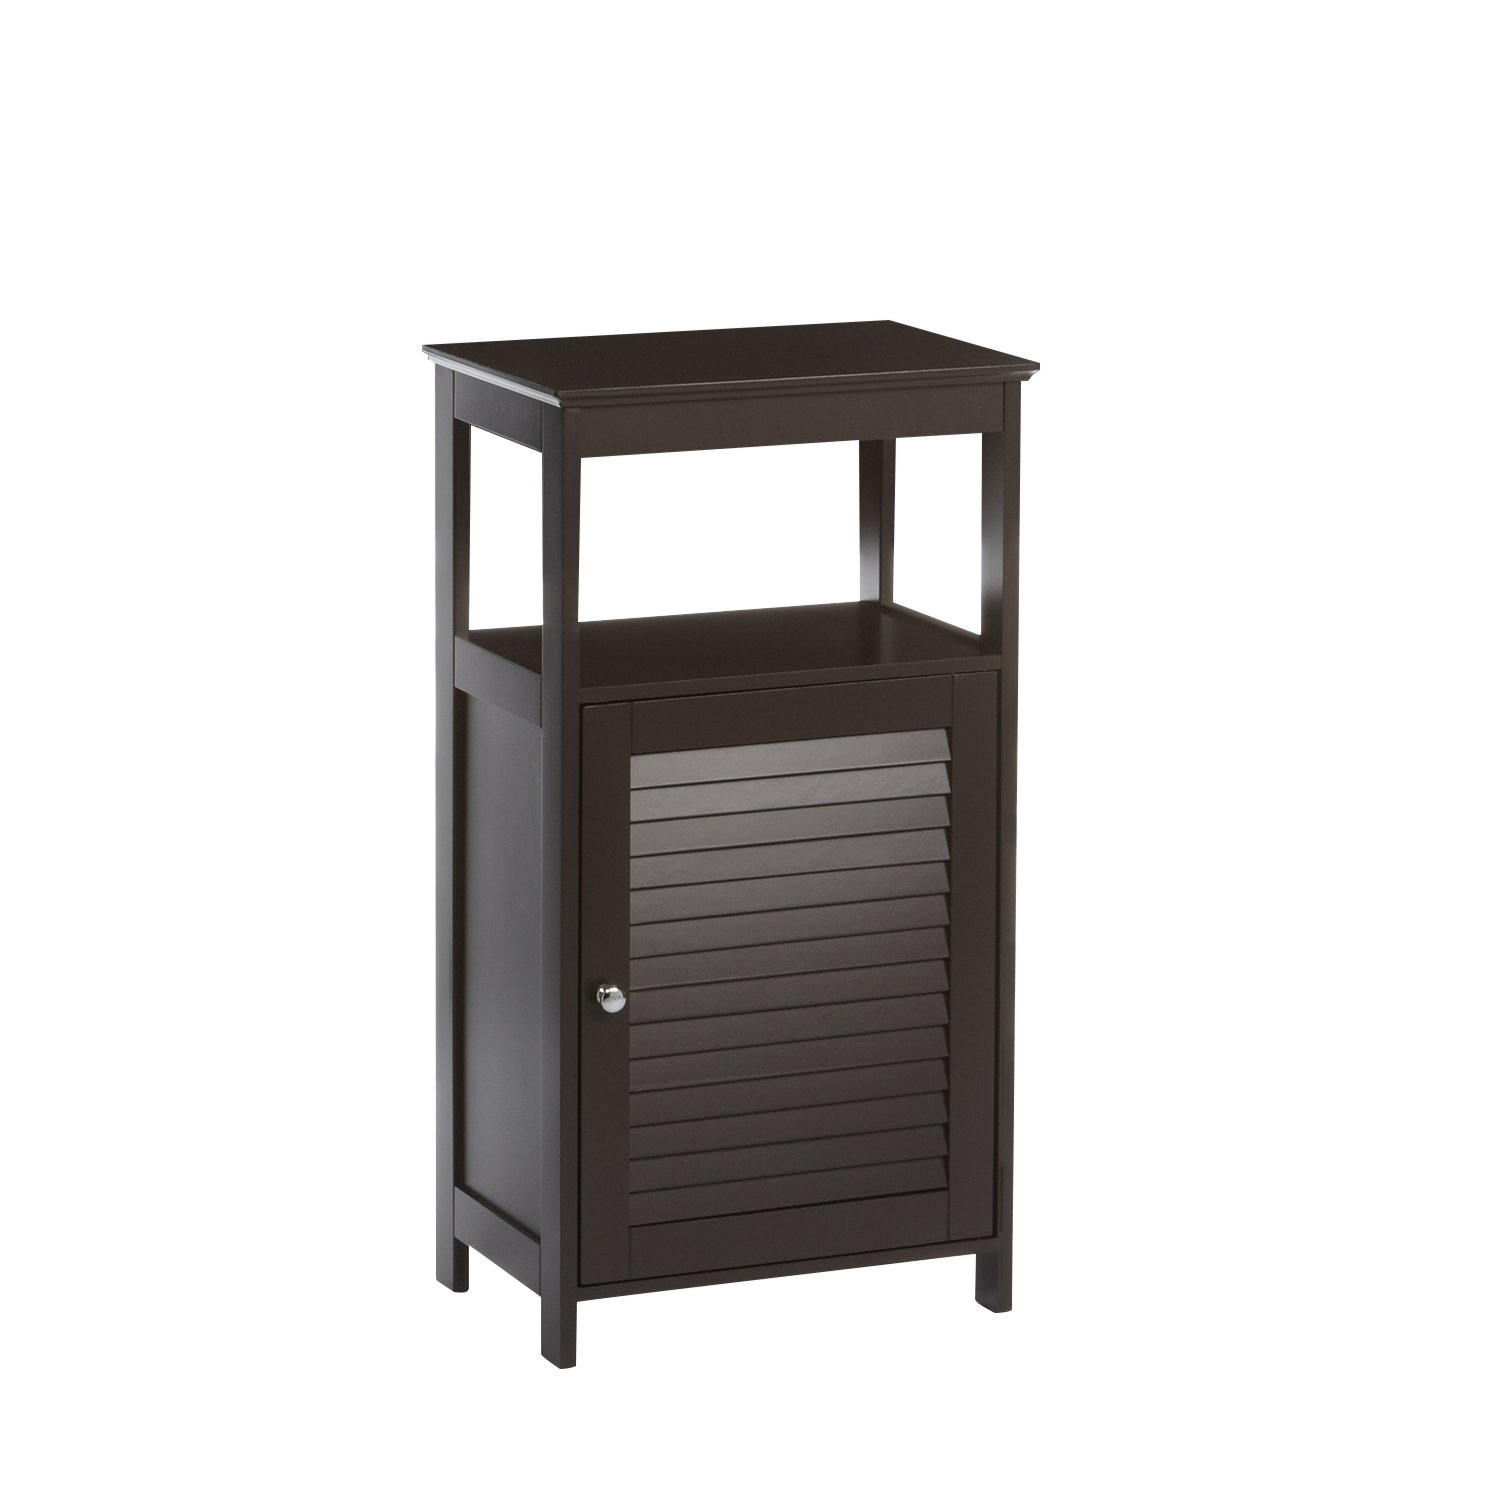 Amazon.com: RiverRidge Home Ellsworth Collection Single Door Floor ...